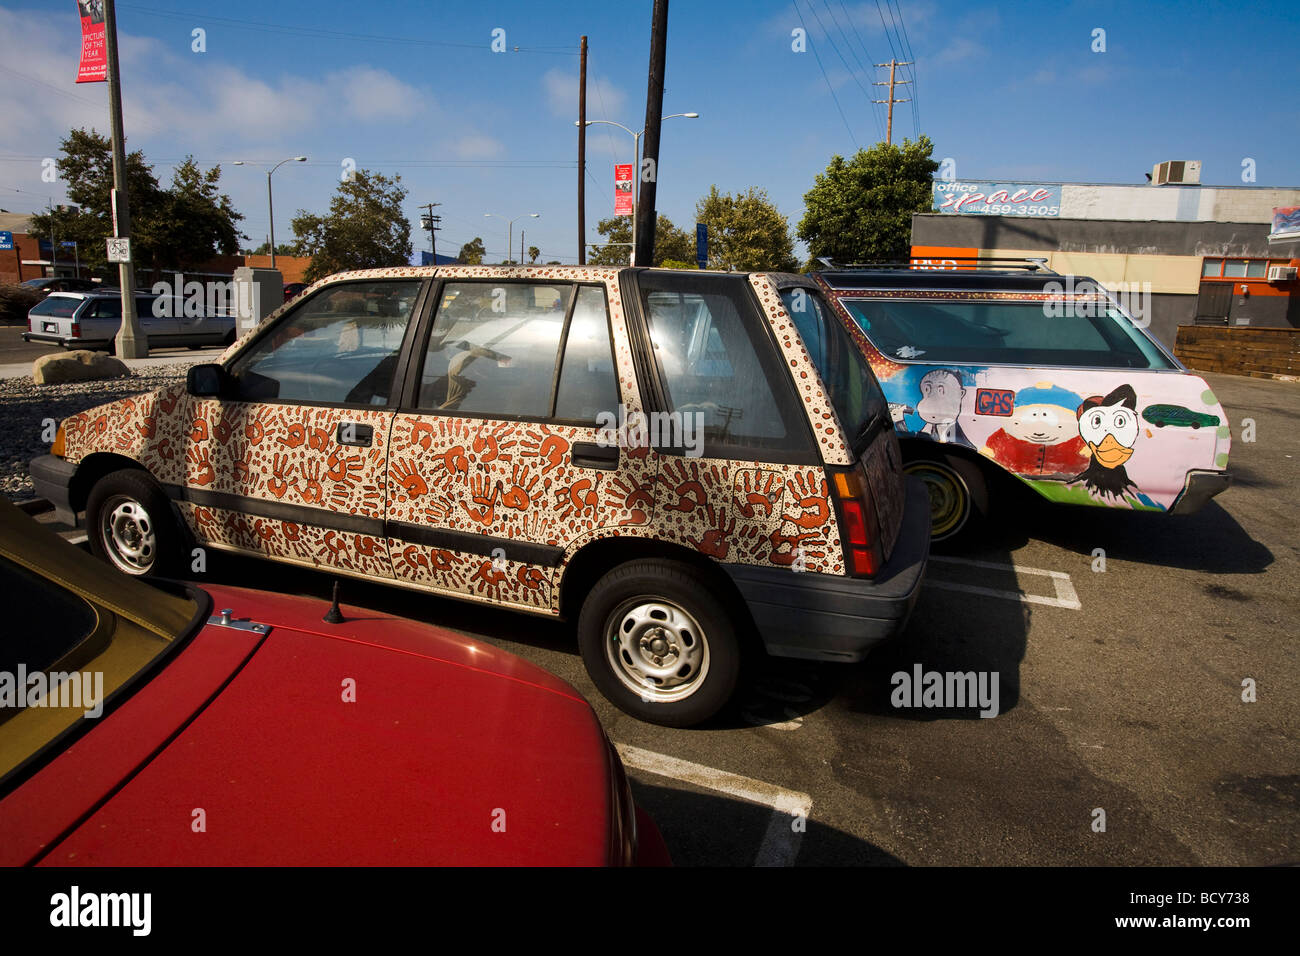 Painted Cars Venice Beach Los Angeles County United States of ...